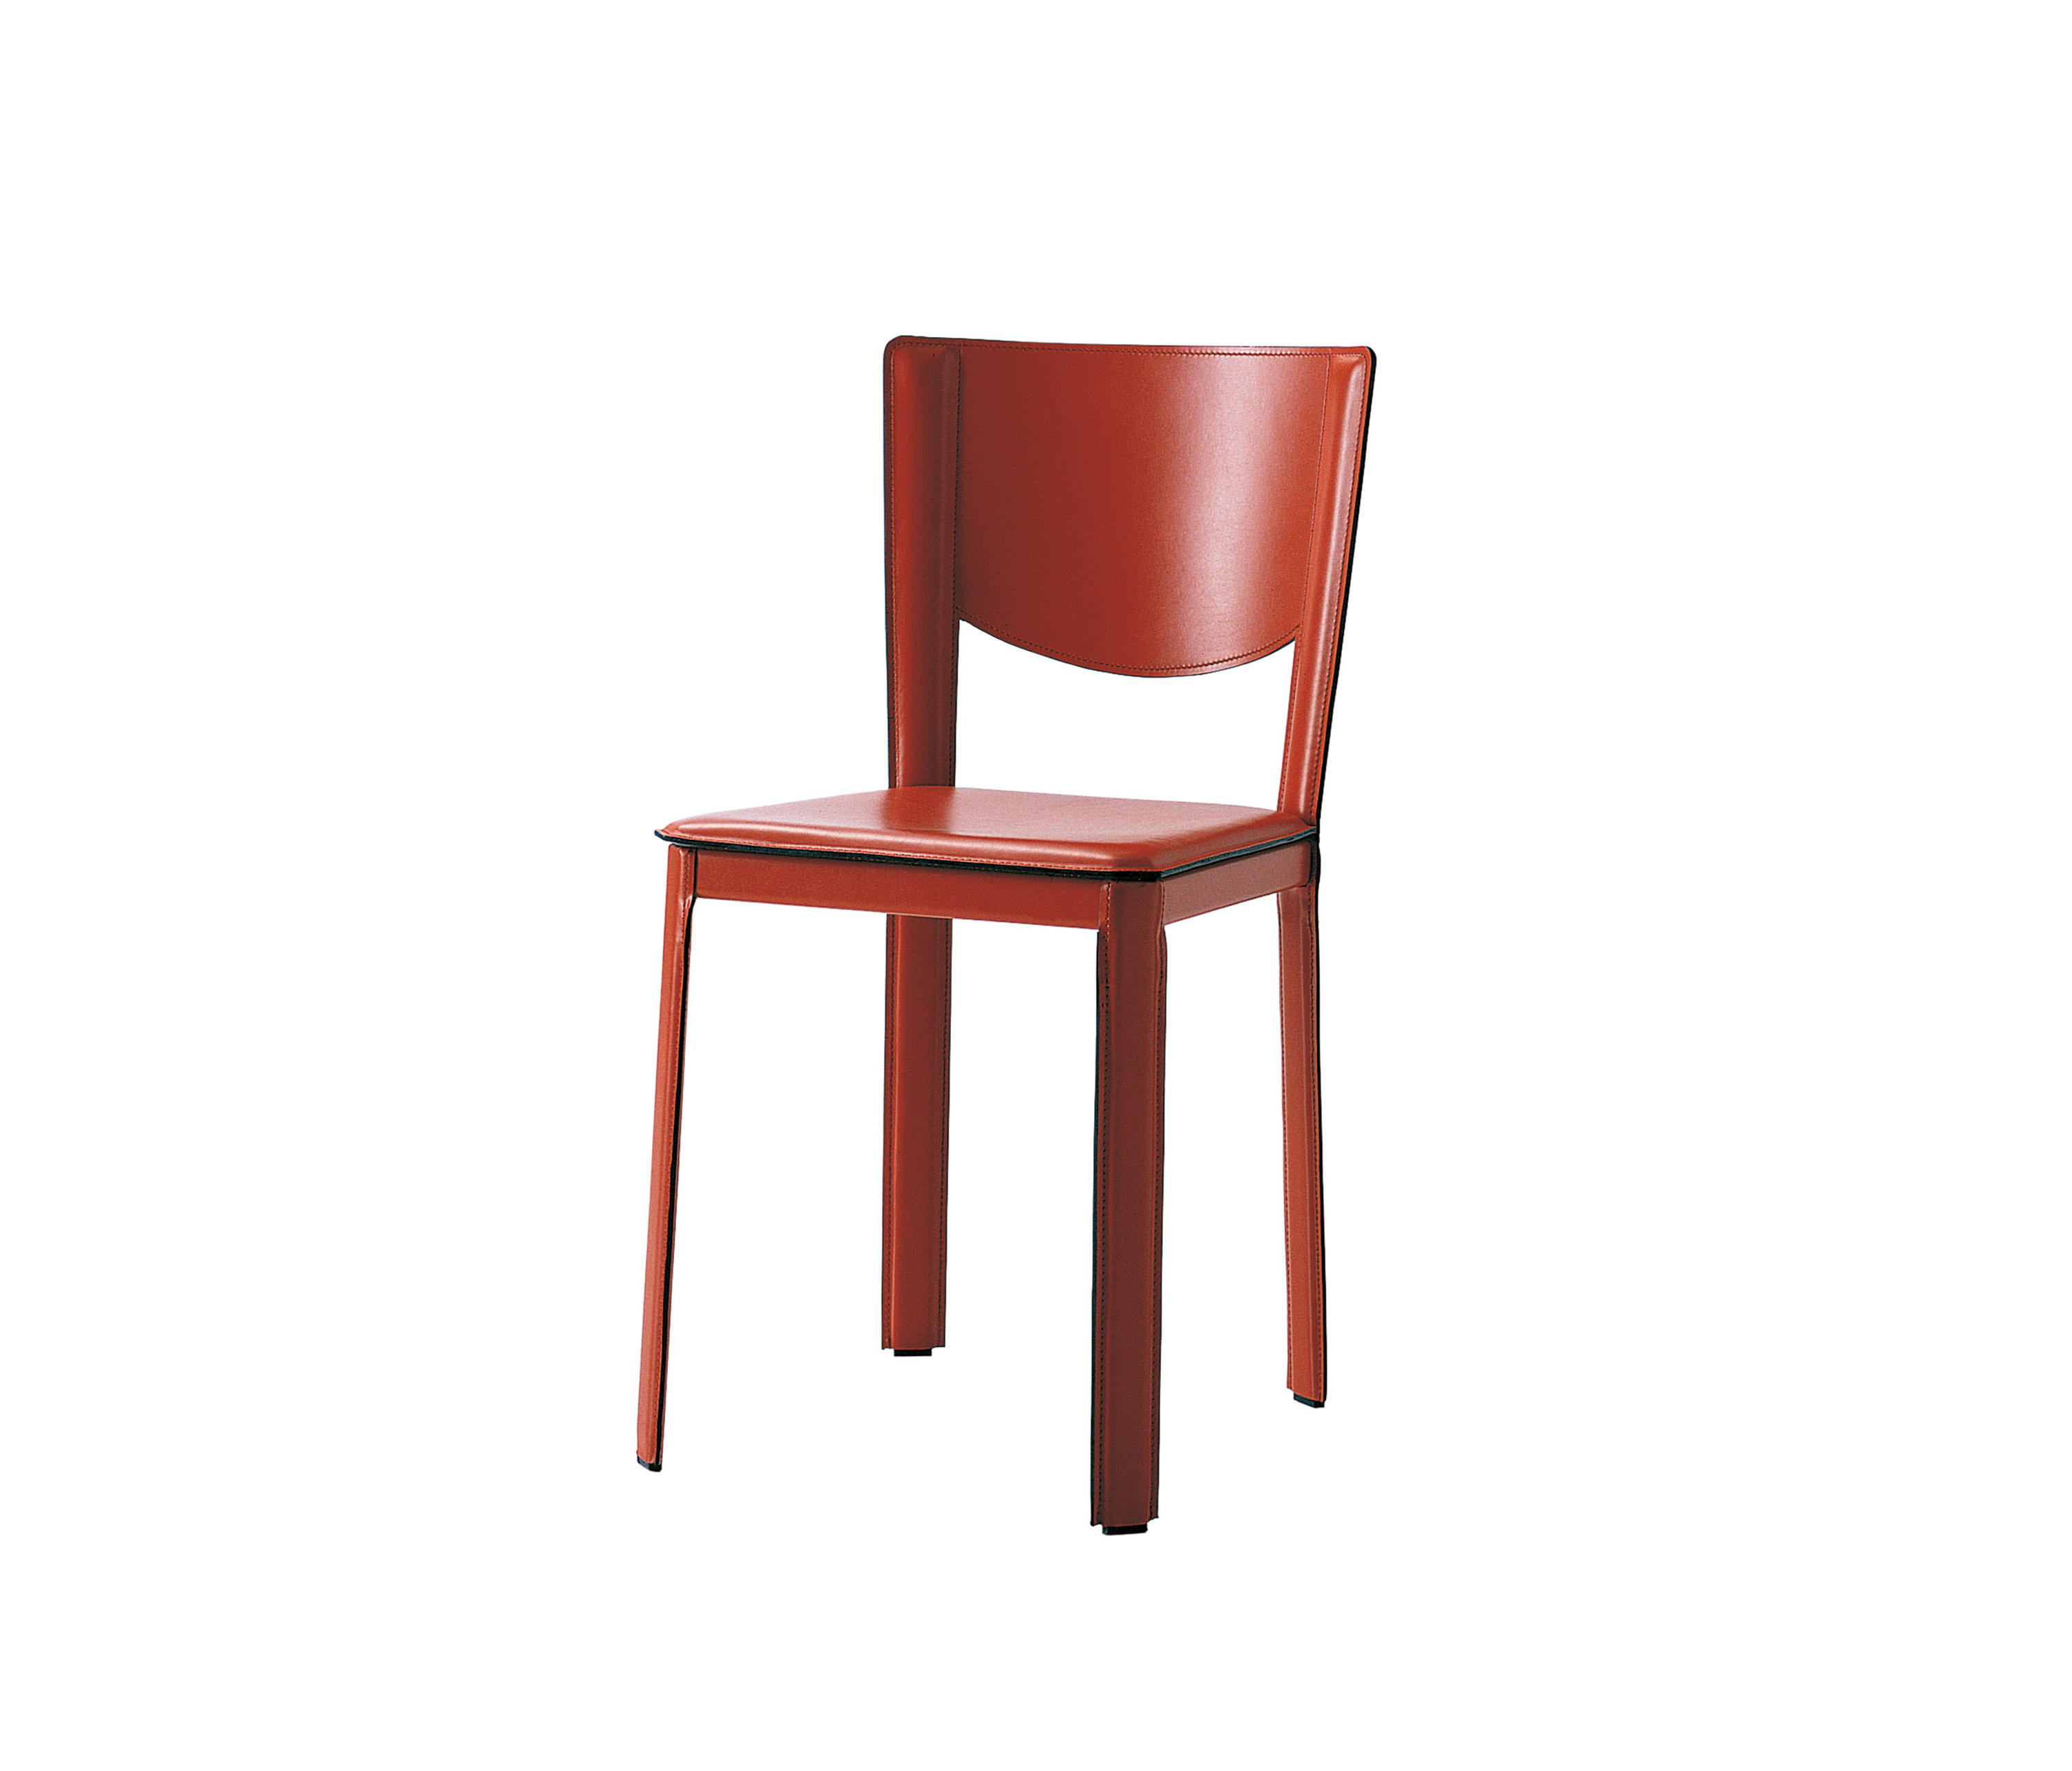 leather restaurant chairs. Alex Chair By Enrico Pellizzoni | Restaurant Chairs Leather I